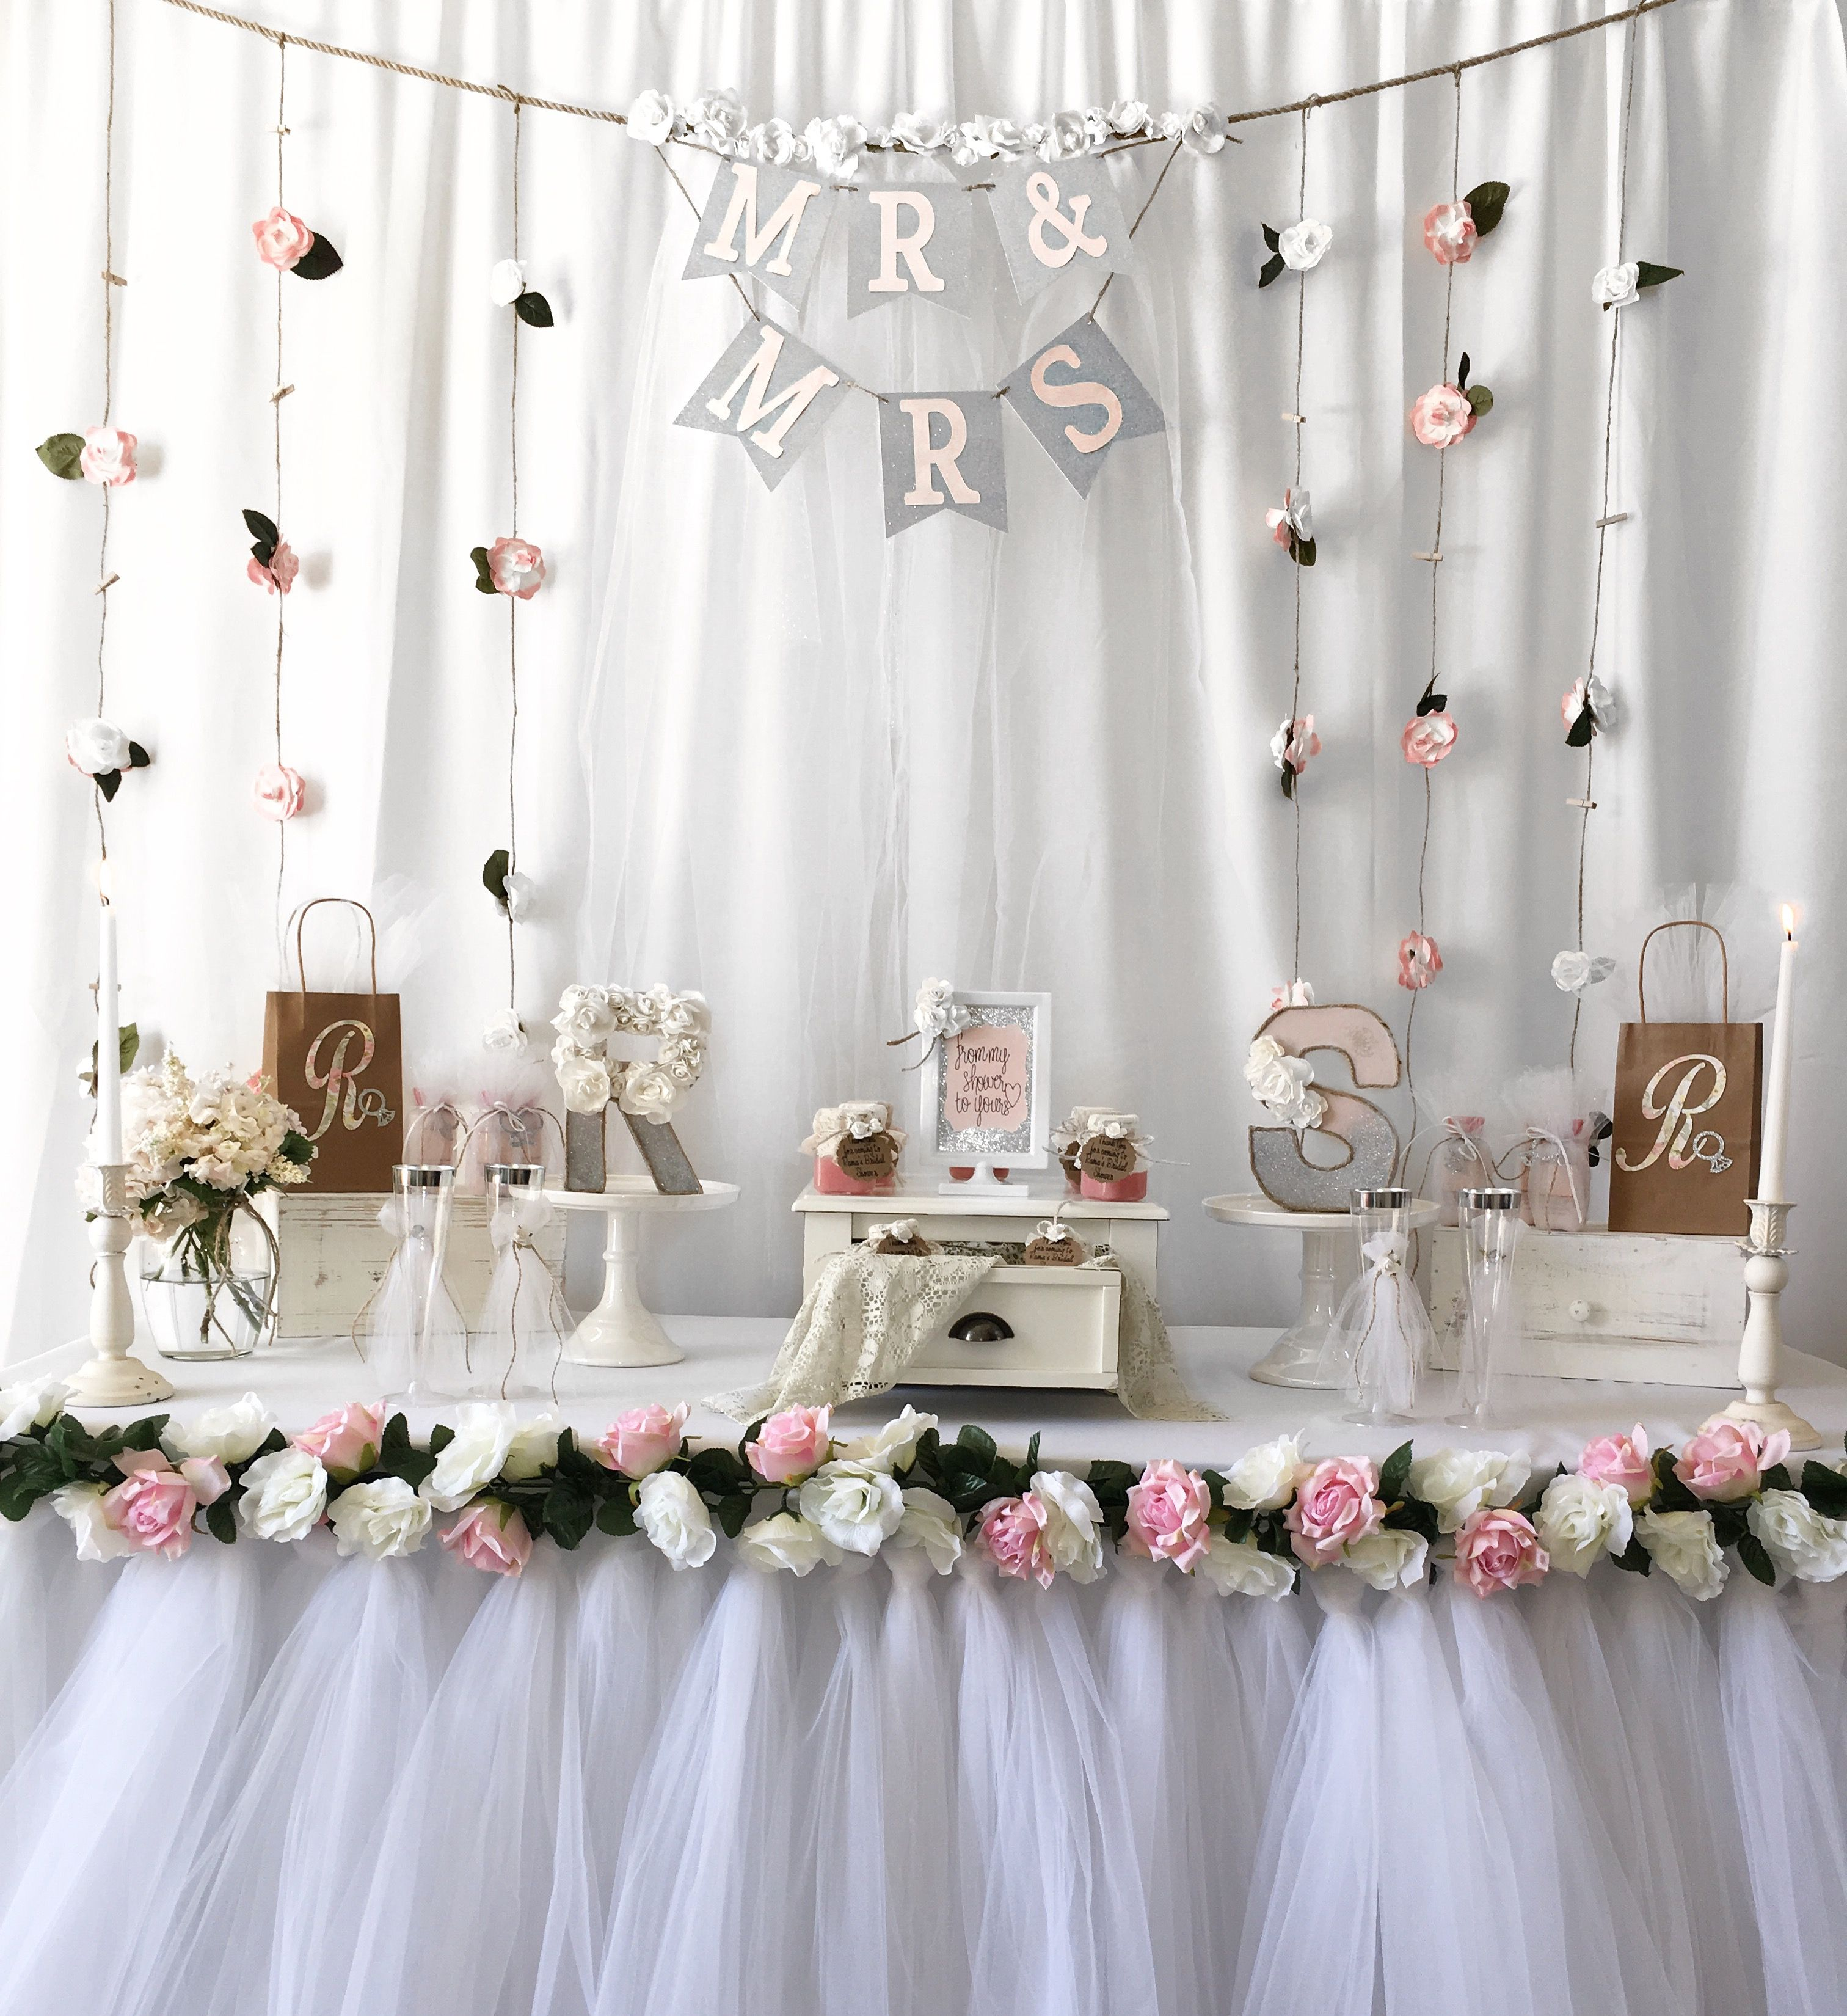 Wedding Gift Table Ideas: Bridal Shower Gift Ideas, Bridal Shower, Tutu Table Skirt